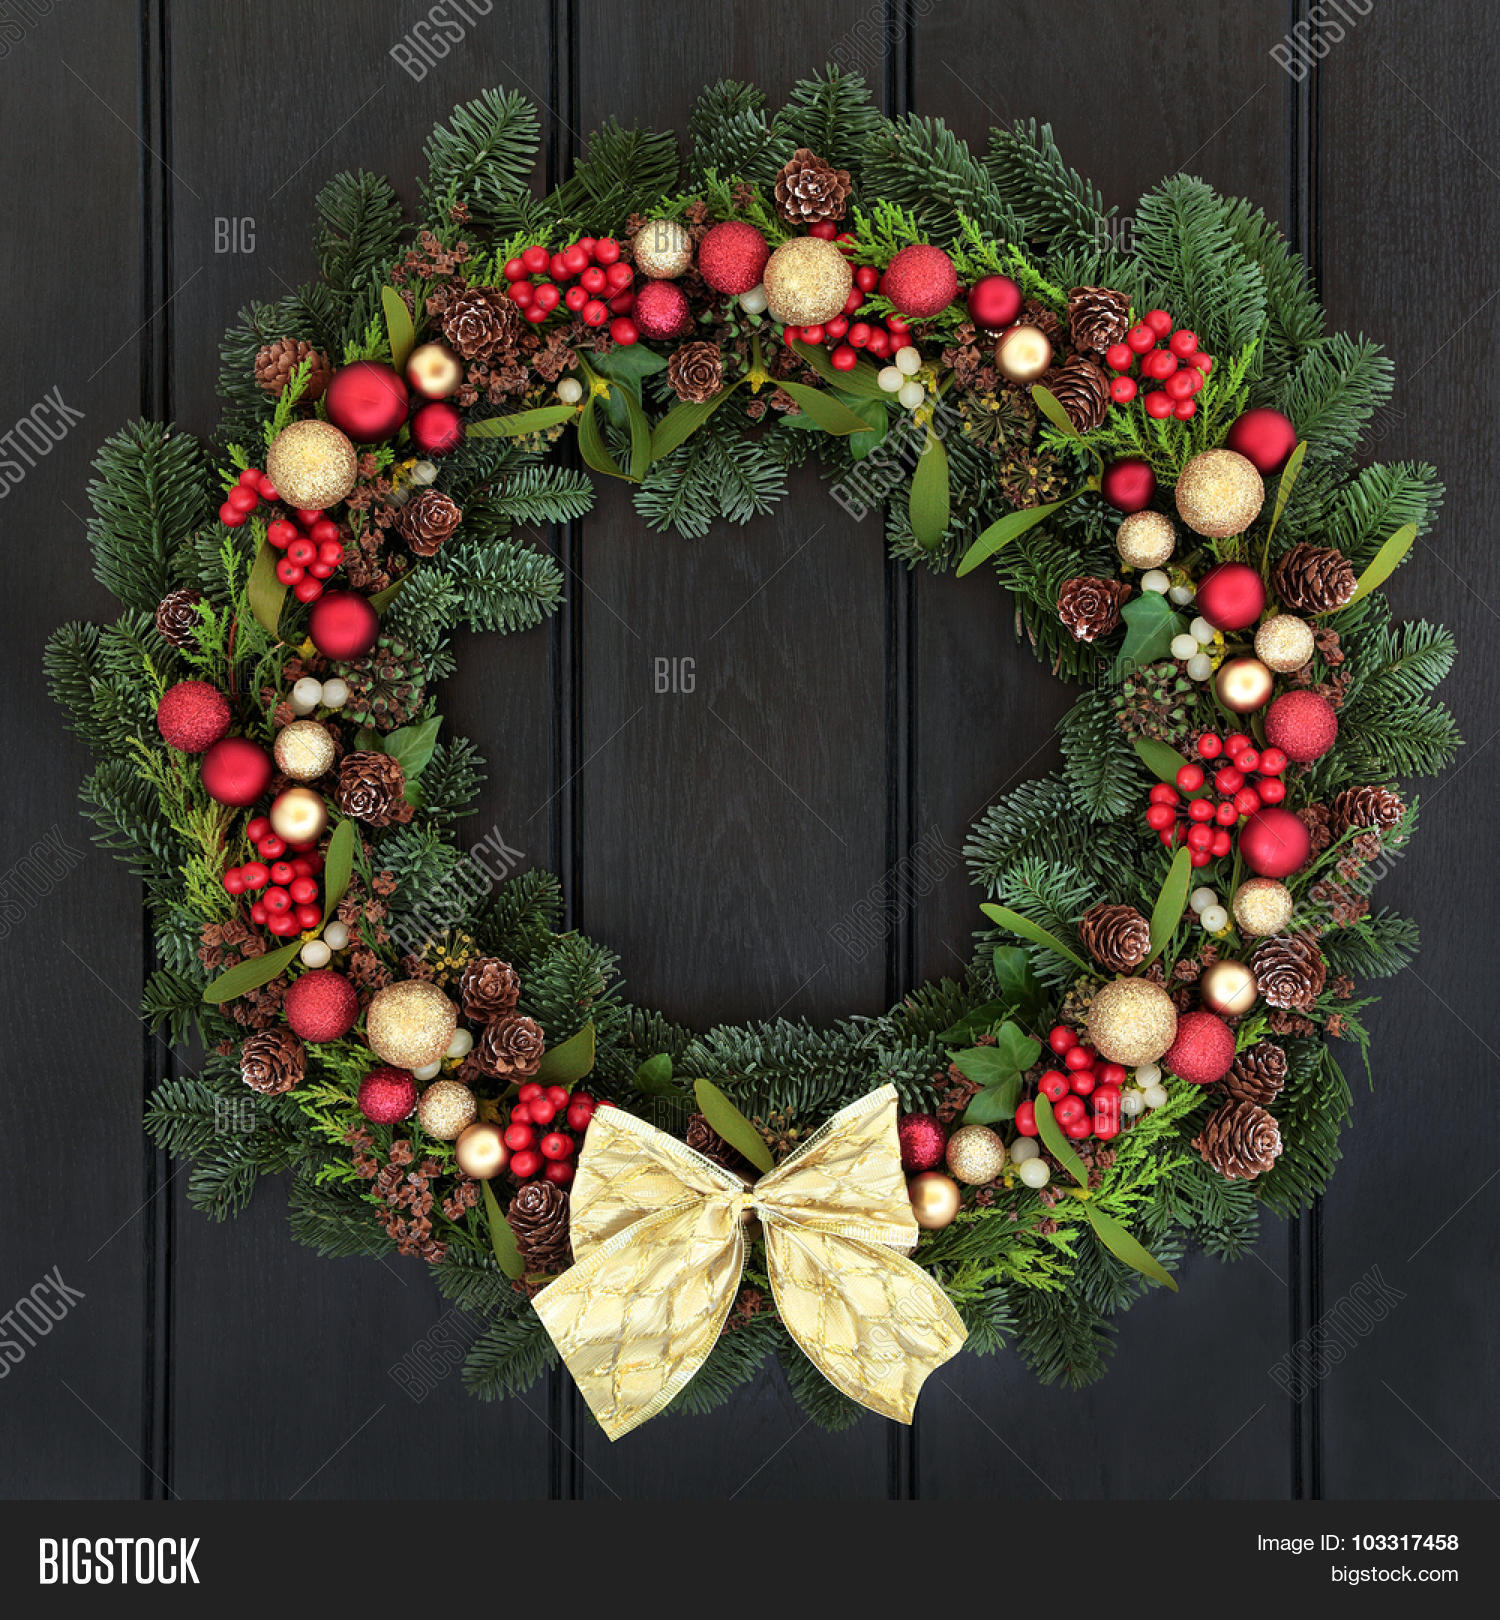 Christmas Wreath Red Image & Photo (Free Trial) | Bigstock